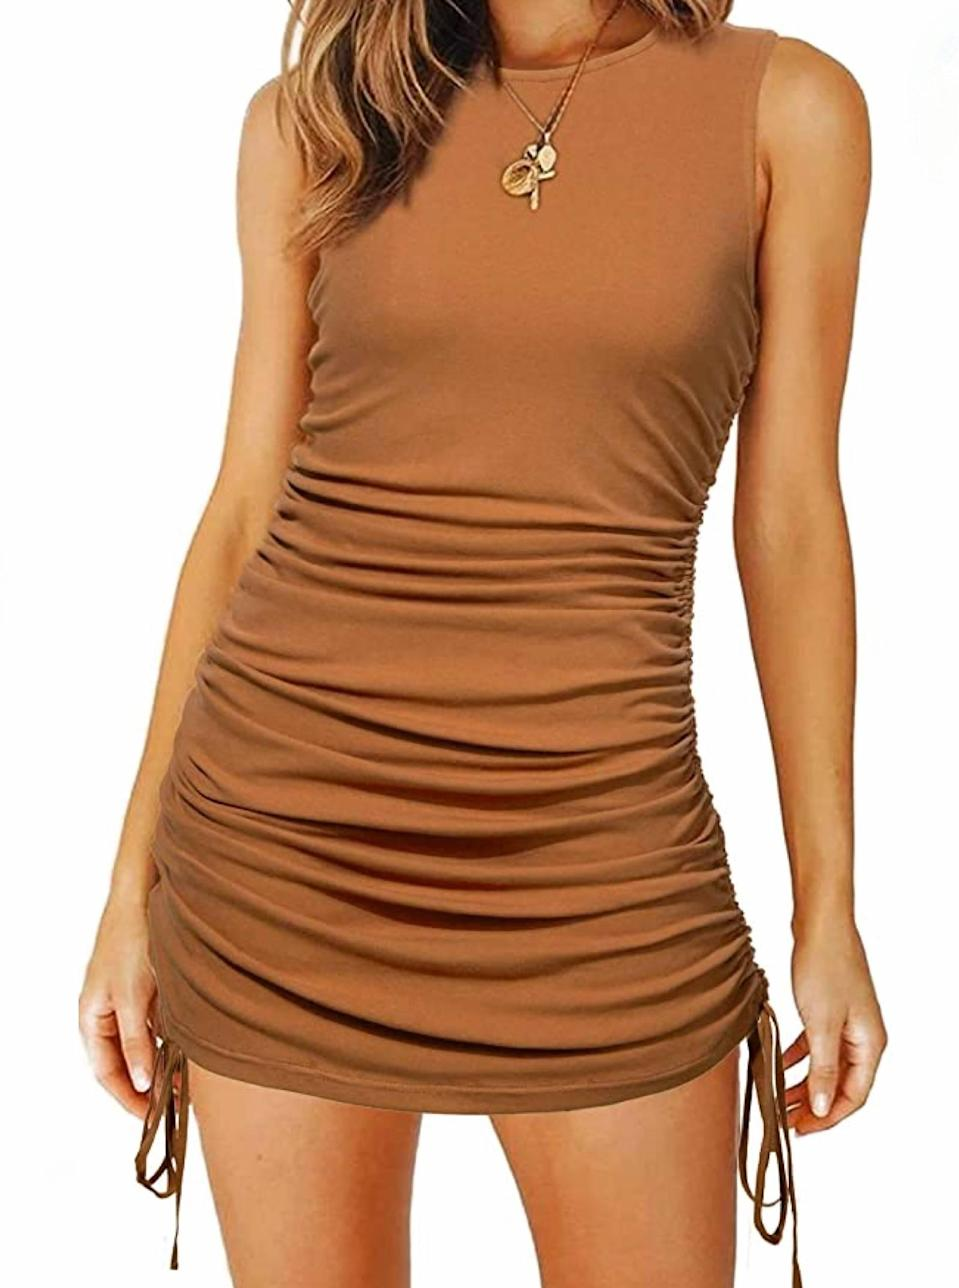 """When a heatwave strikes, reach for a naked dress such as this neutral toned mini (also available in black, green, and rust). $16, Amazon. <a href=""""https://www.amazon.com/Zalalus-Drawstring-Bodycon-Sleeveless-Sundress/dp/B08MDWRYGH"""" rel=""""nofollow noopener"""" target=""""_blank"""" data-ylk=""""slk:Get it now!"""" class=""""link rapid-noclick-resp"""">Get it now!</a>"""